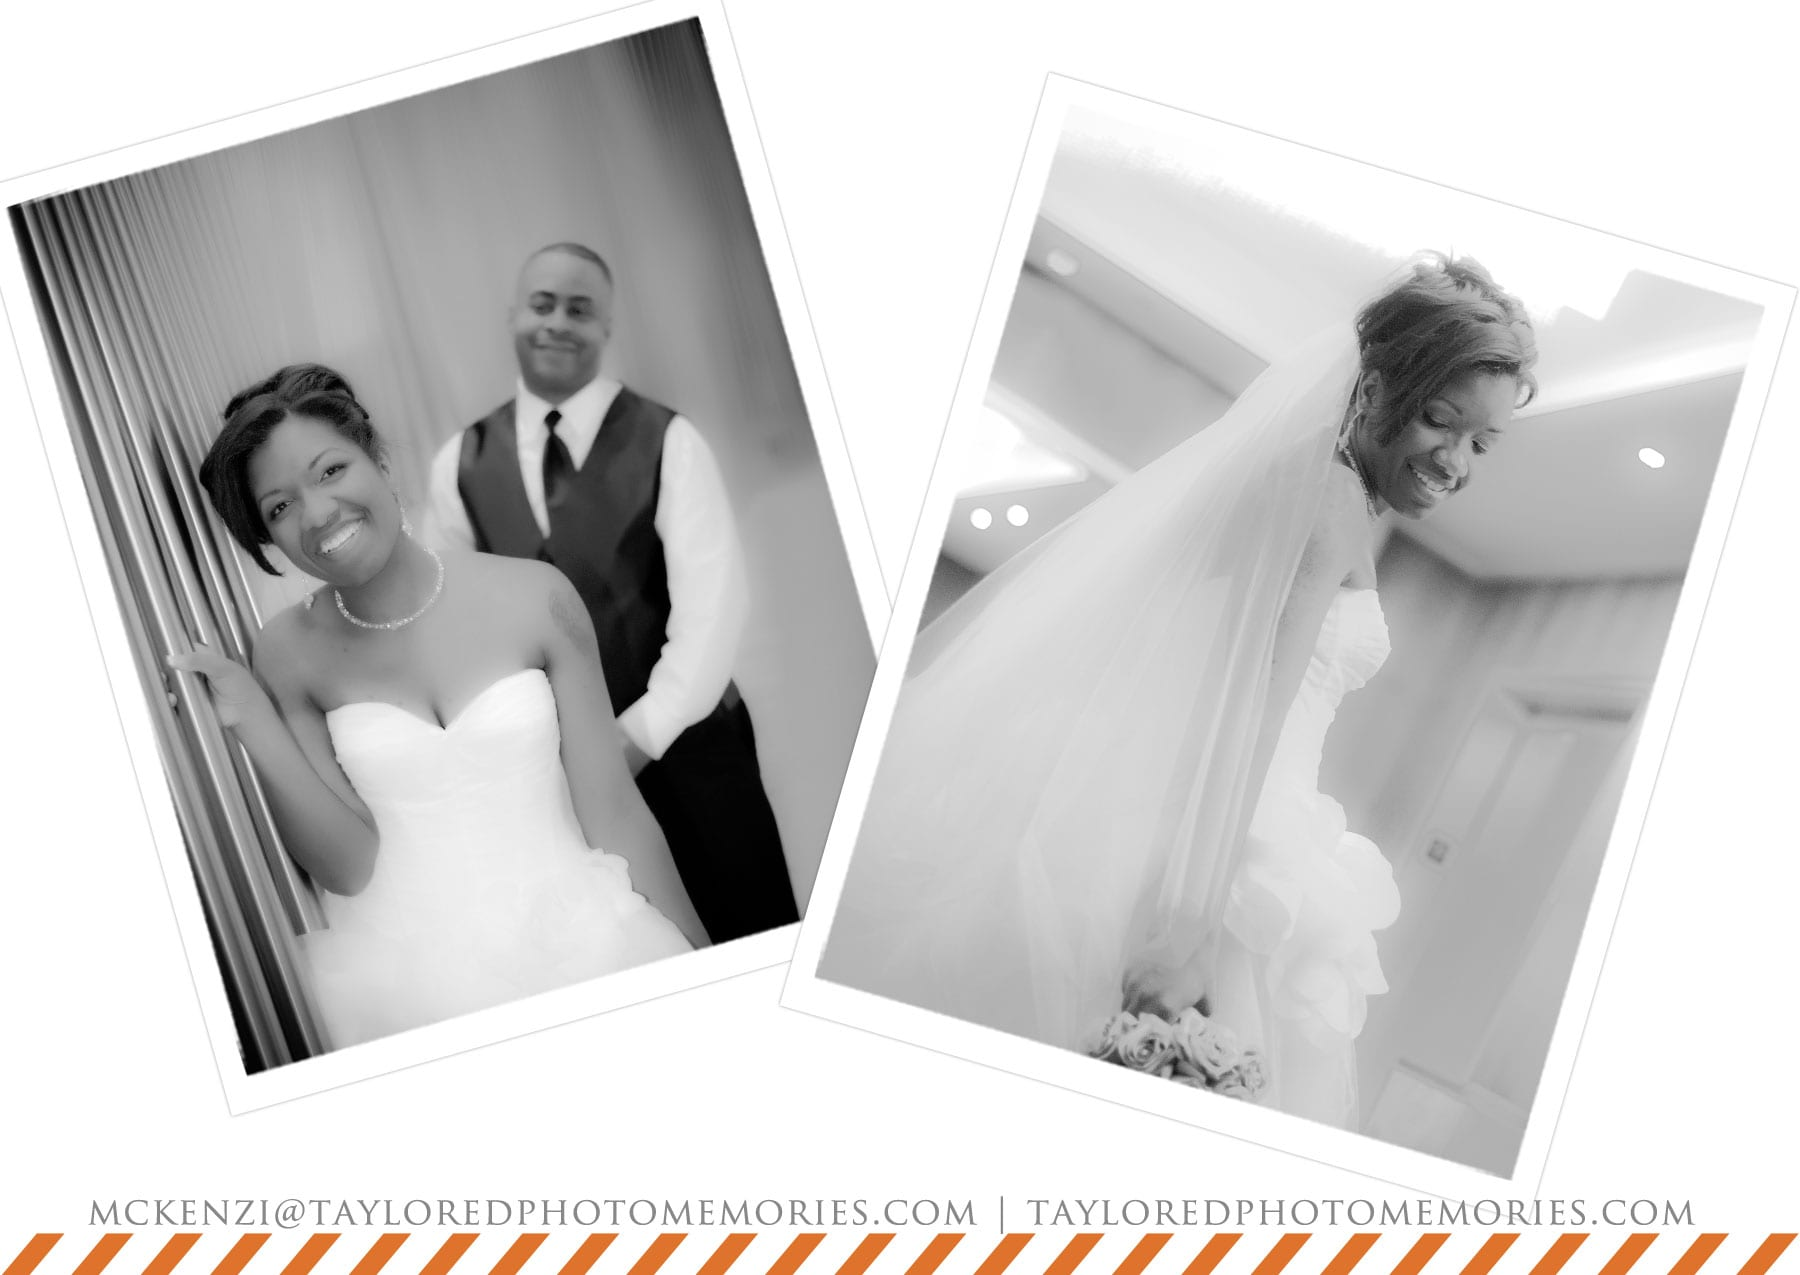 Las Vegas Elopement Photography | Wedding at Aria | Taylored Photo Memories